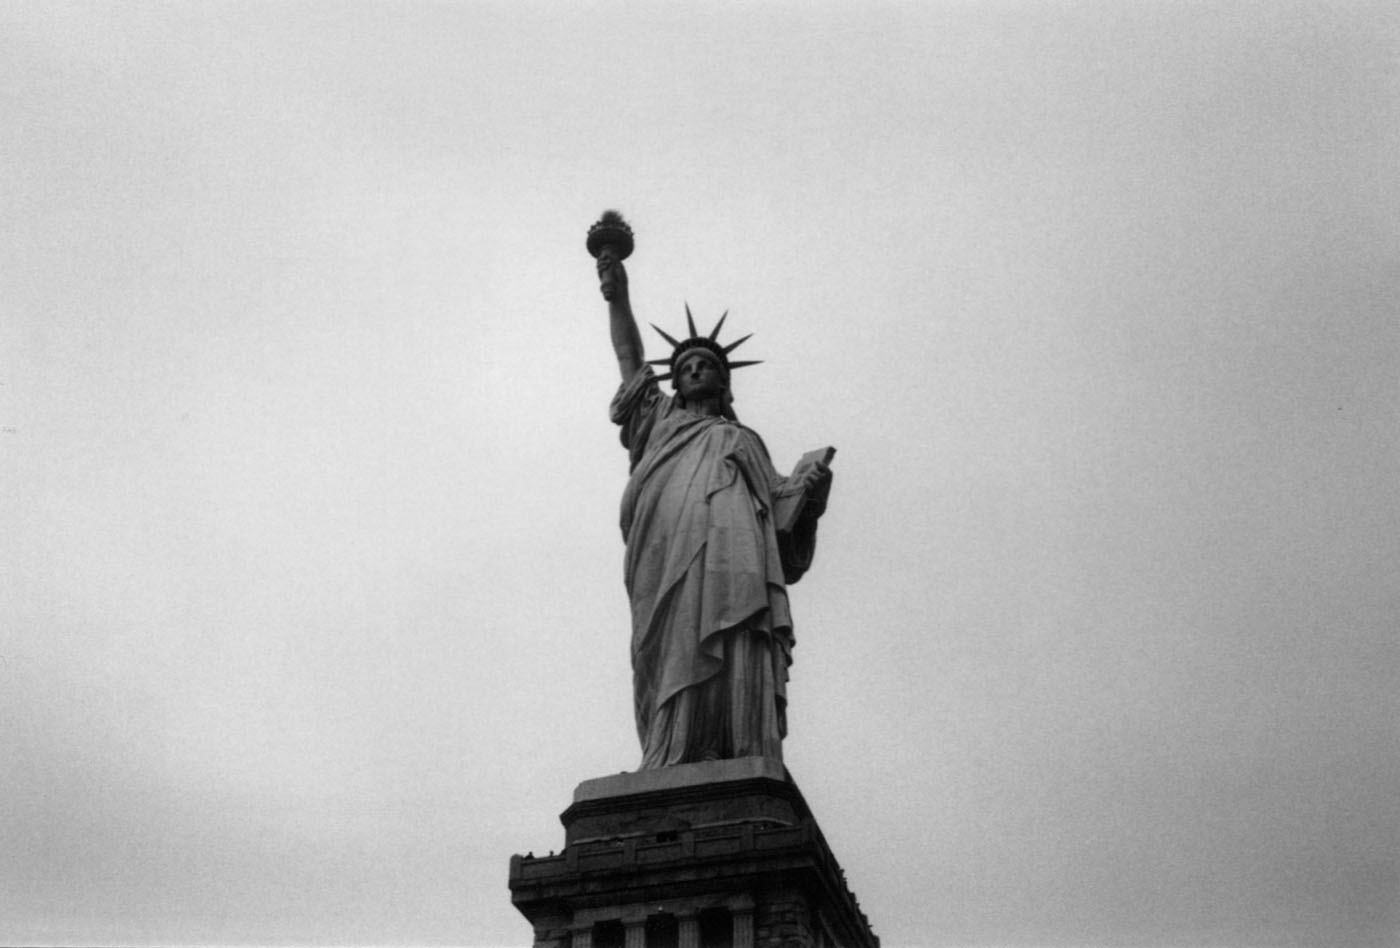 New York 1999 - Statue of Liberty